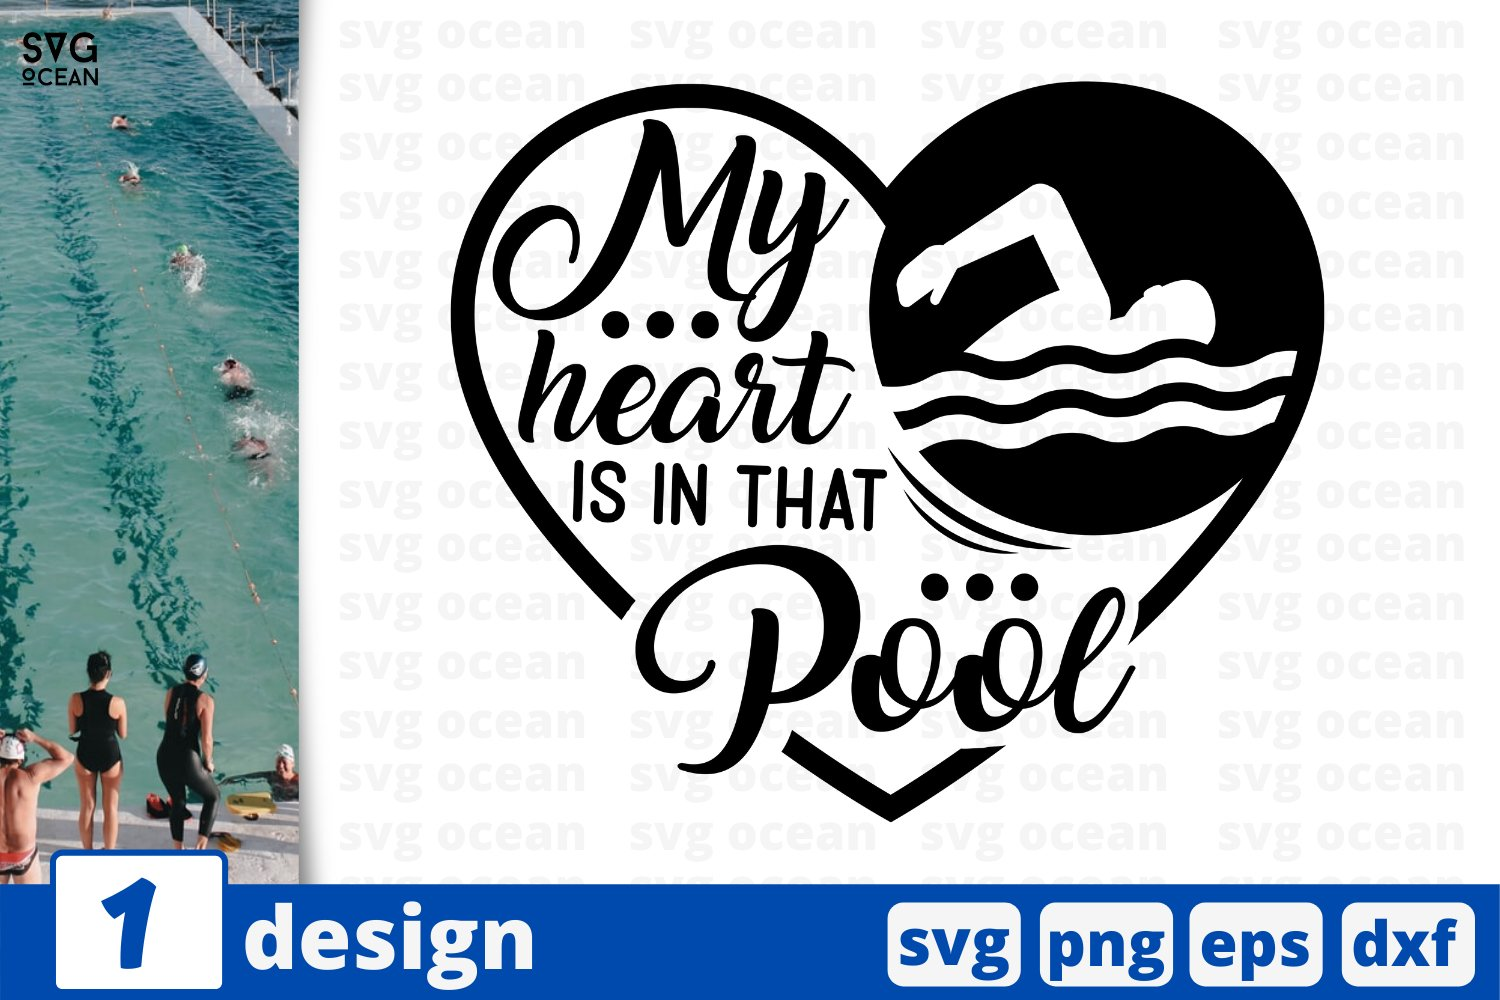 Download Coffee Png Life Swim Dad Svg Lover Swim Day Dxf Cut File Svg Cricut Space Mom Fuel Swimmer Goggles Cricut File Eps Sport Family Art Collectibles Digital Prints Sultraline Id